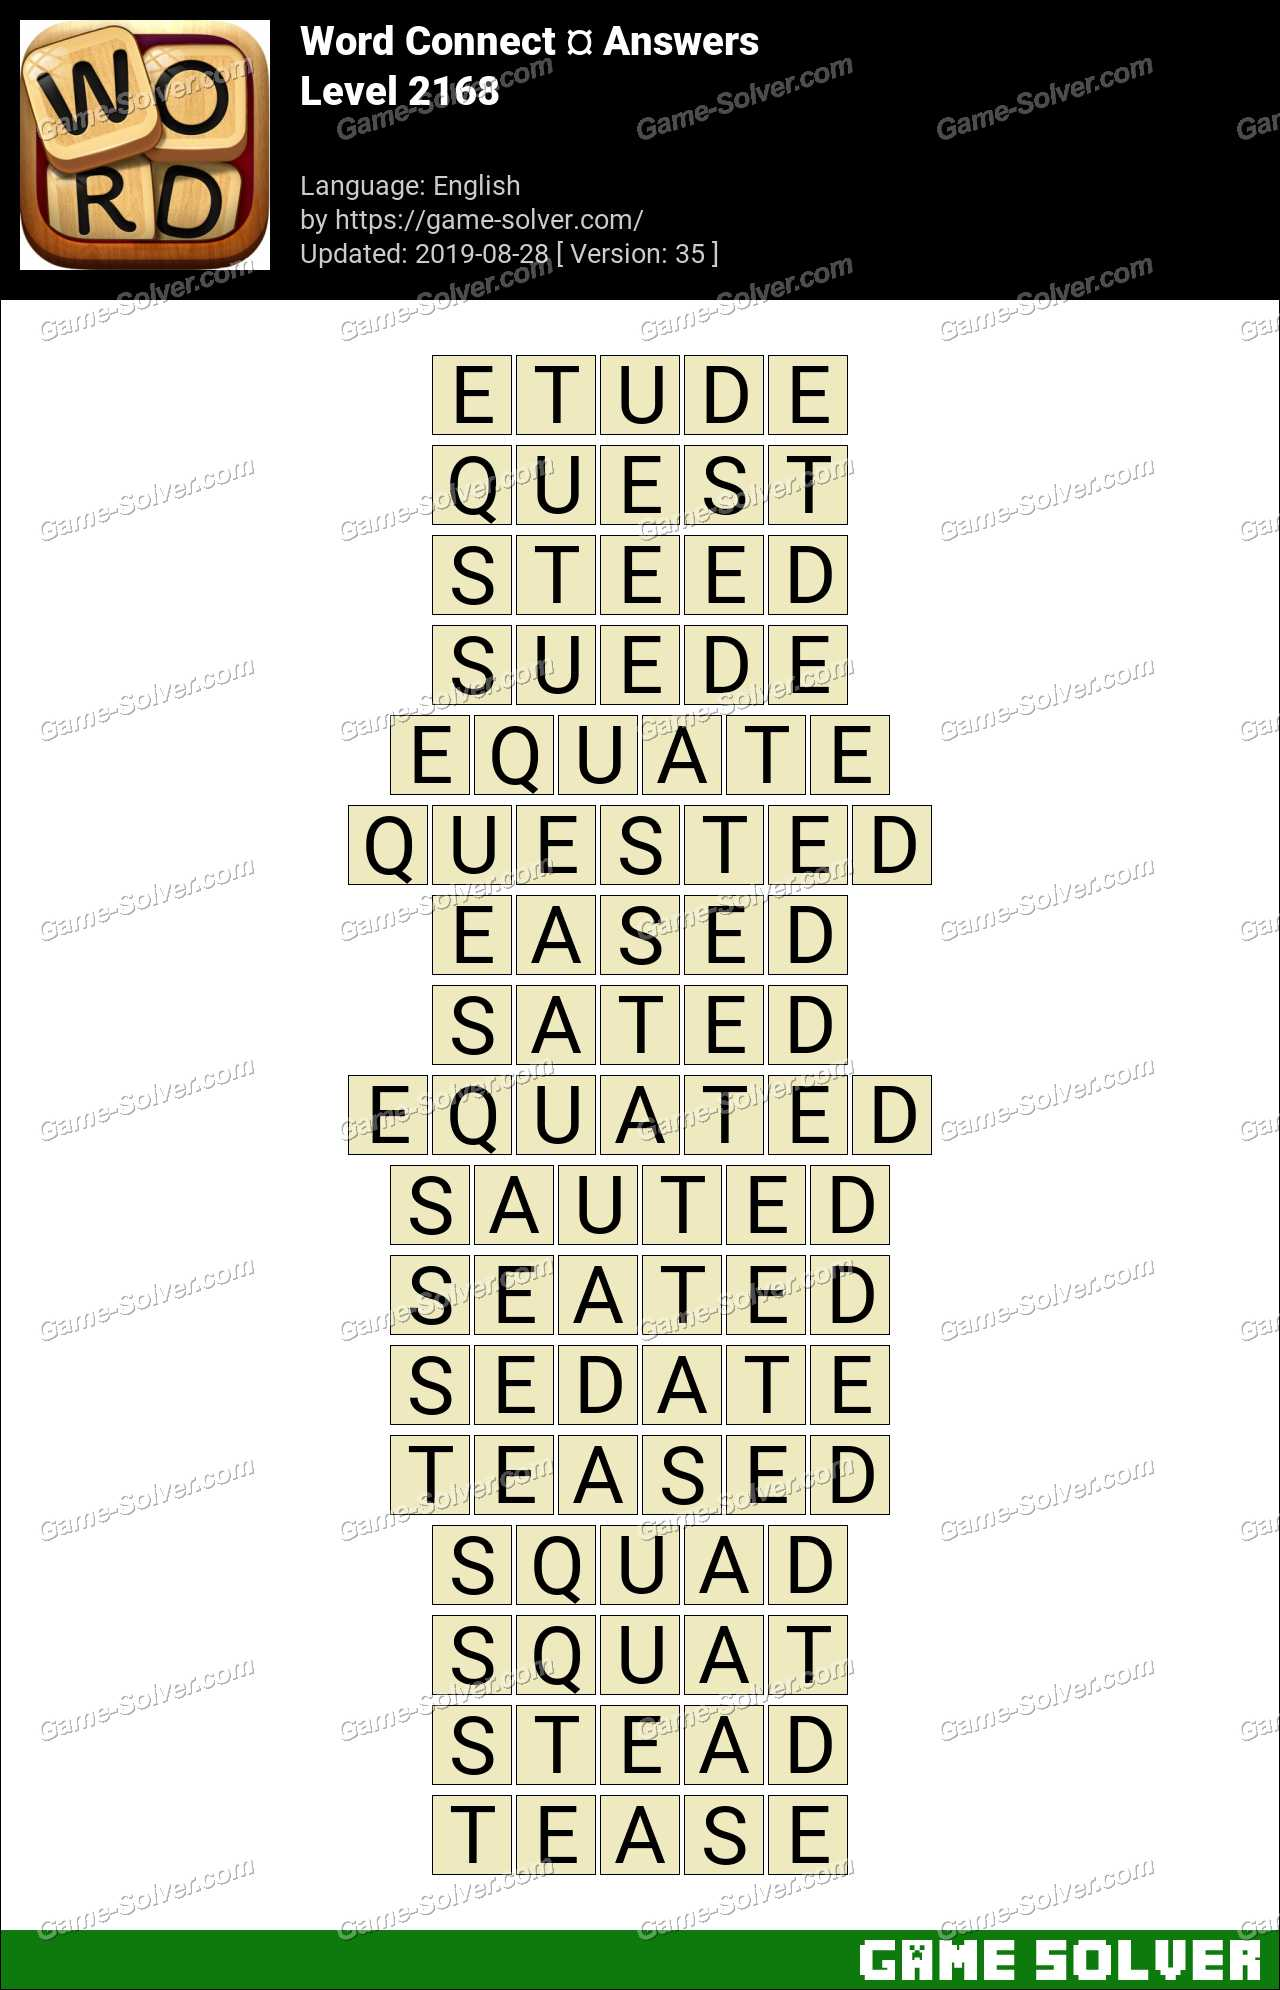 Word Connect Level 2168 Answers